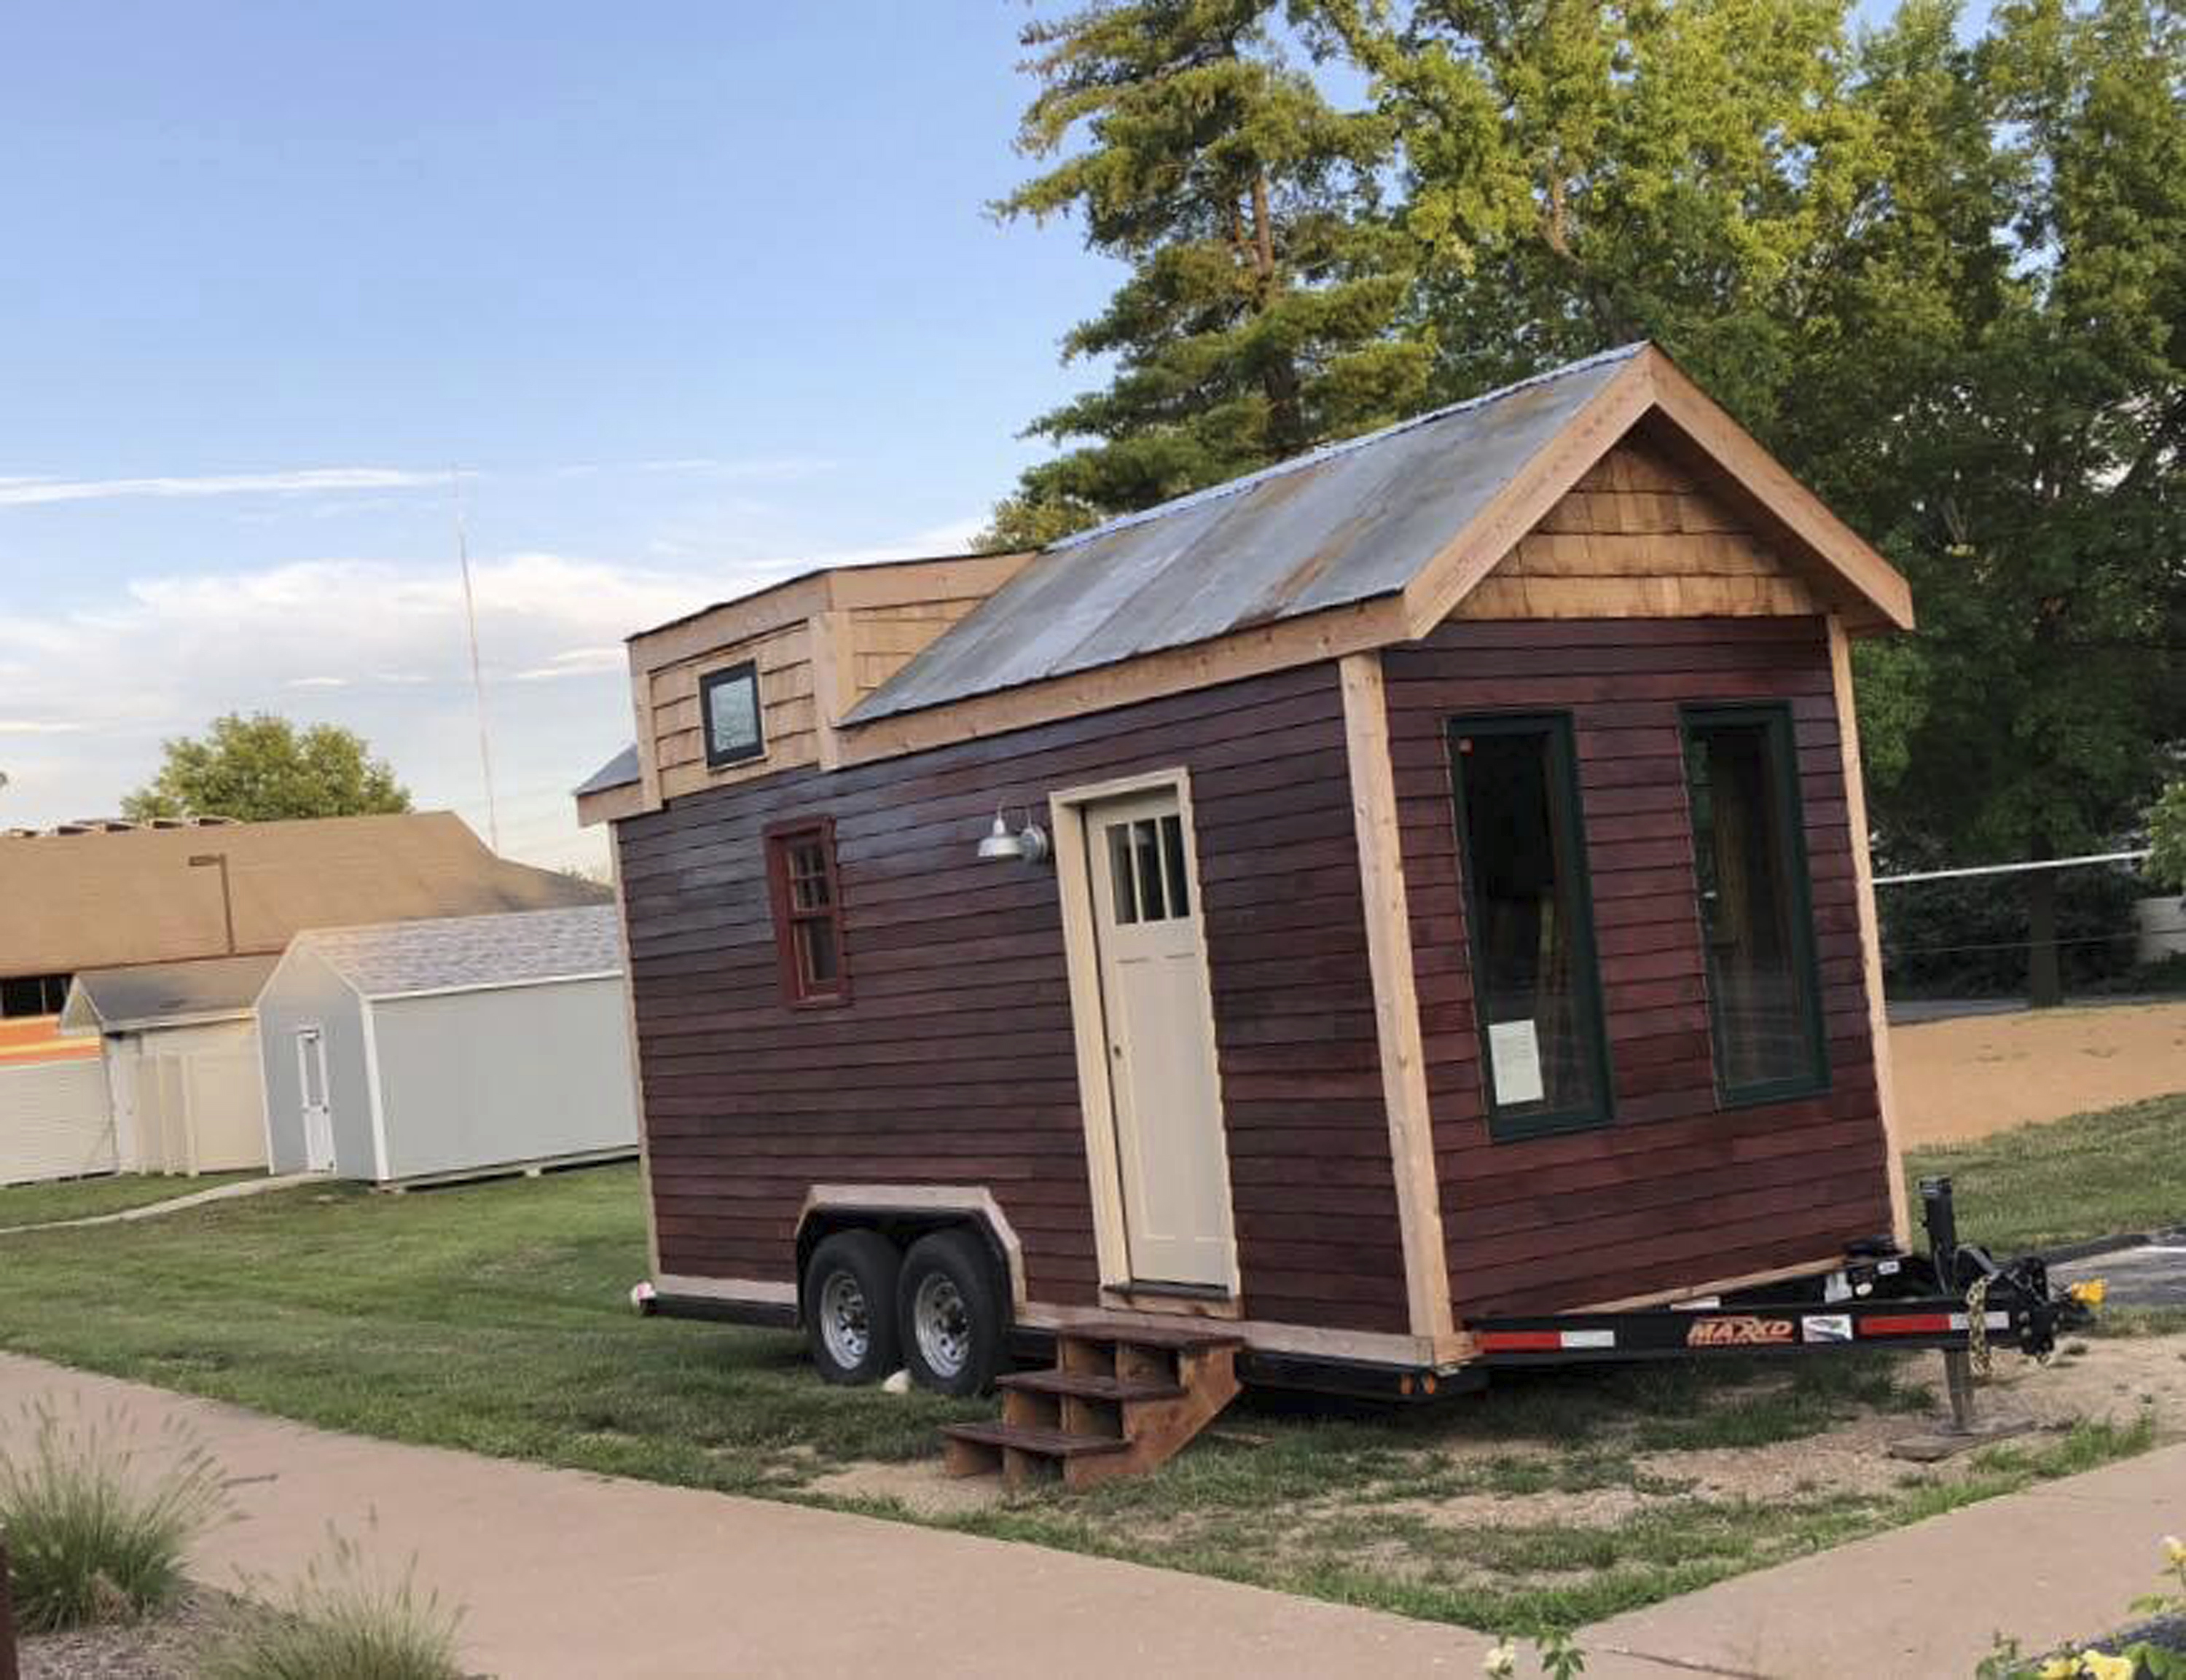 A Maine Couple Built Their Own Tiny House Then The Town Declared It Illegal